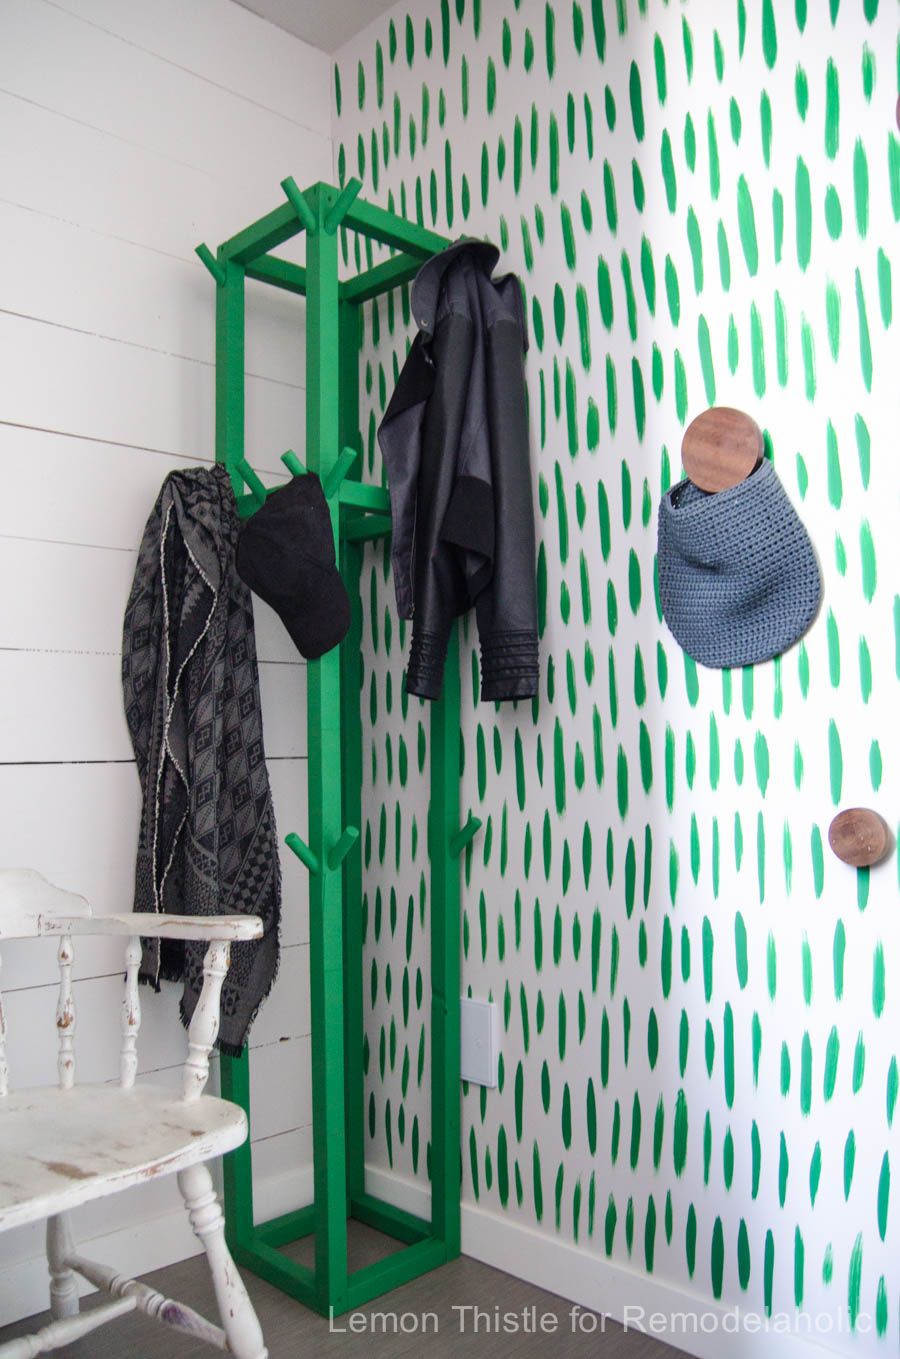 I love this DIY wooden coat rack- the cube shape and green paint is so fun!